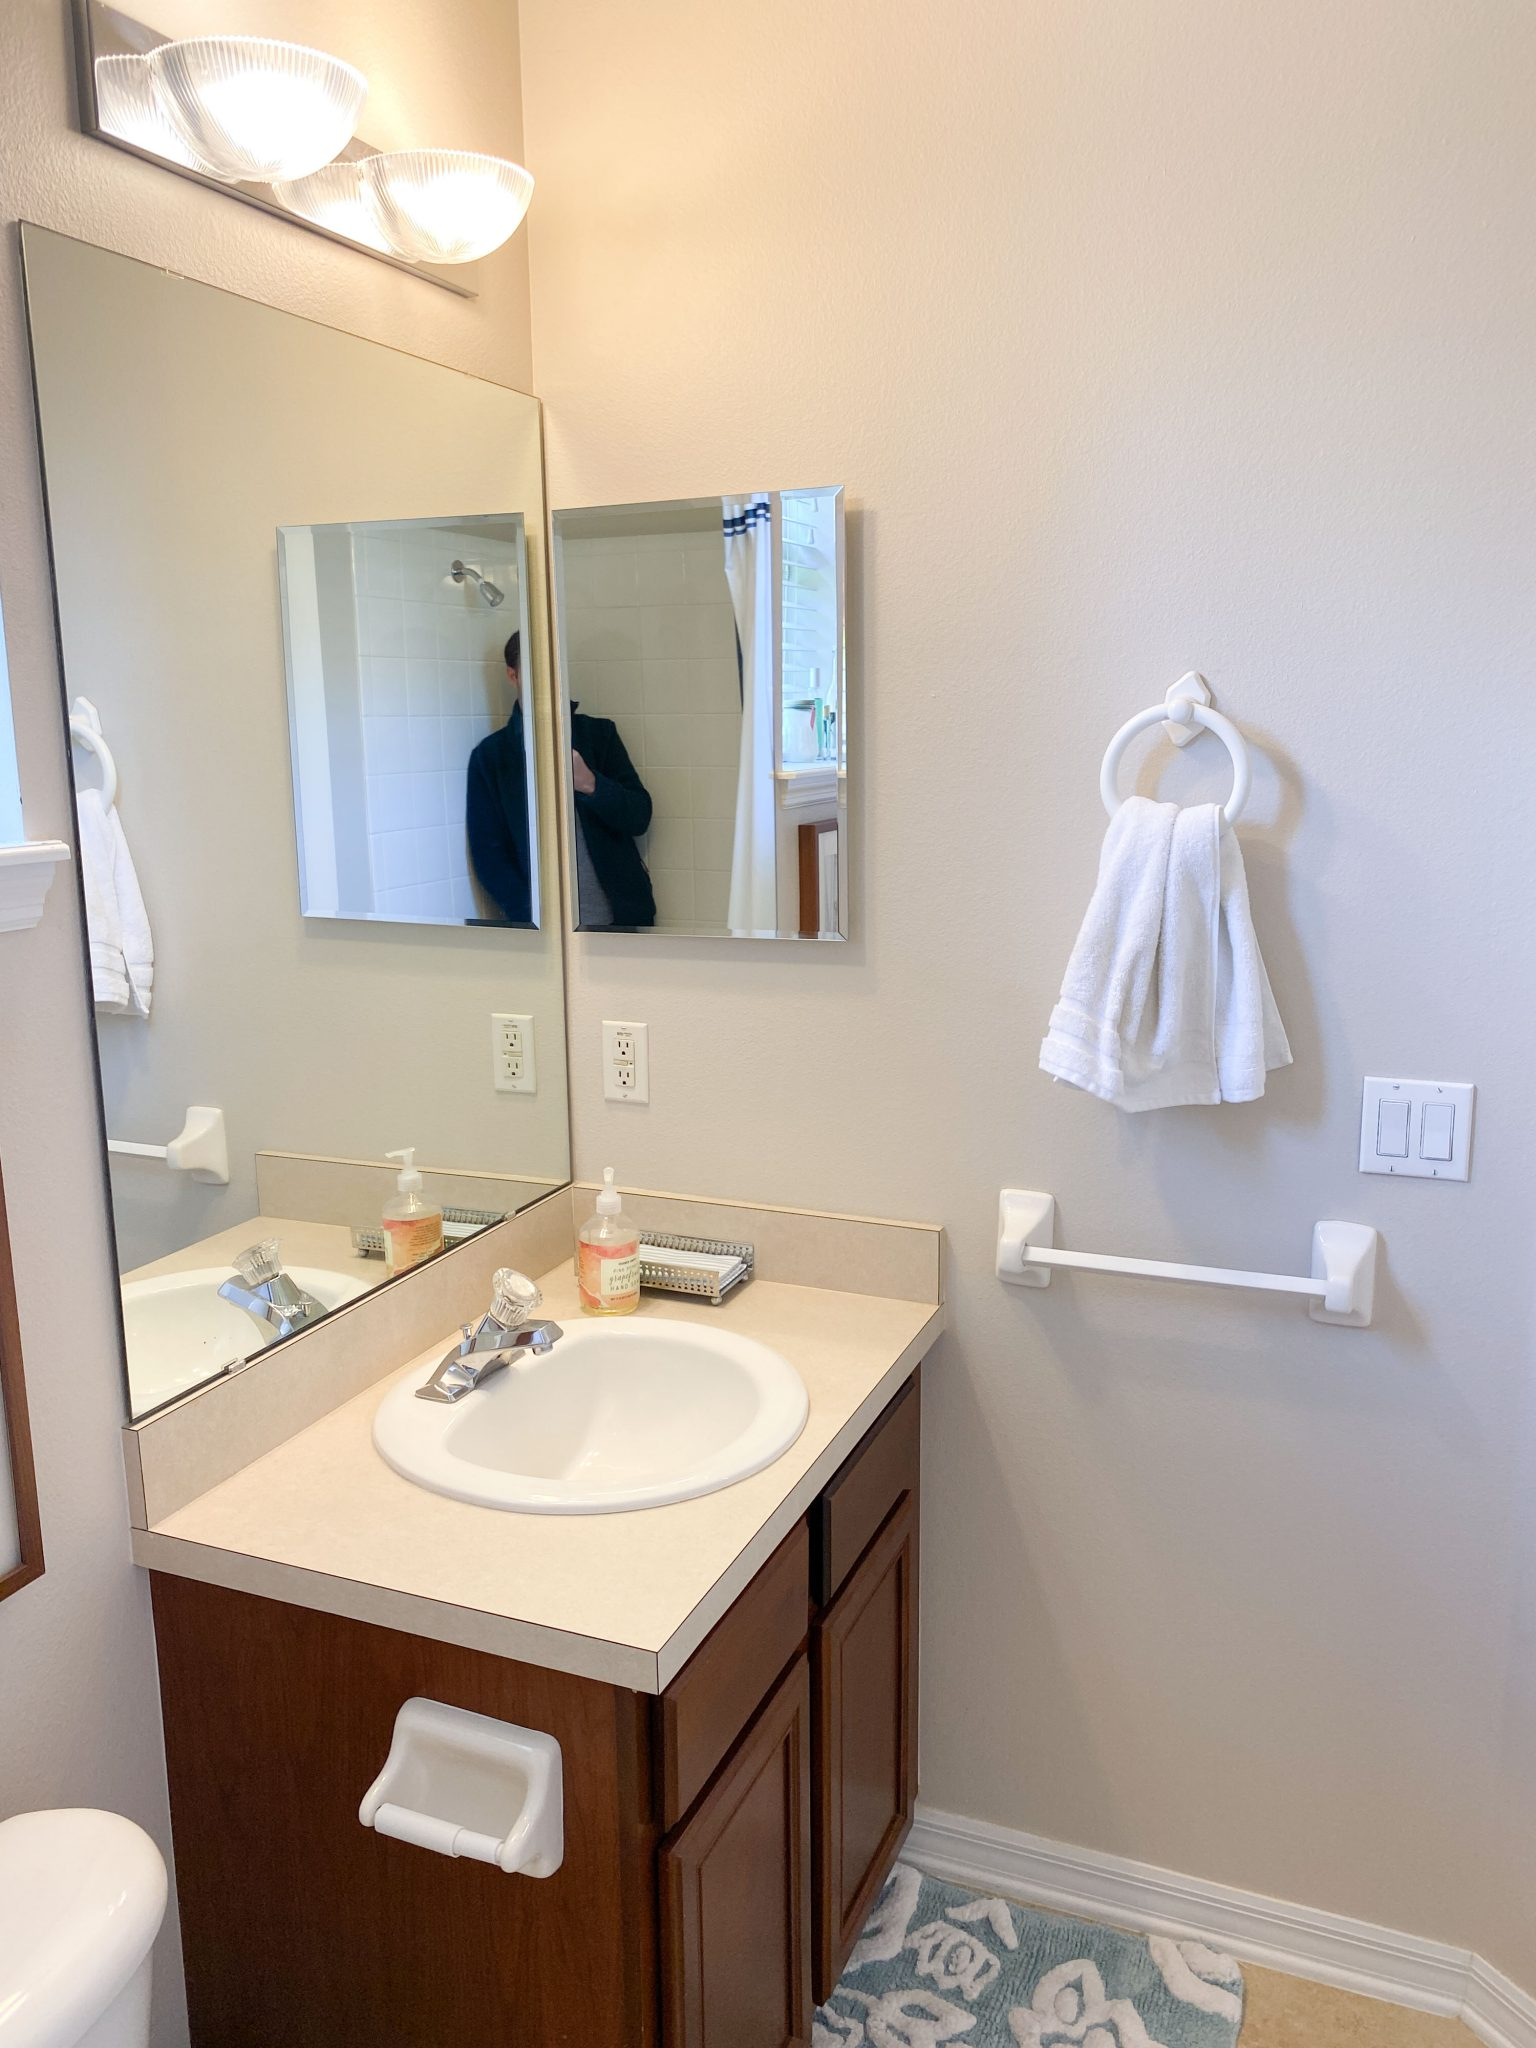 Before the renovation - picture of bathroom from another angle